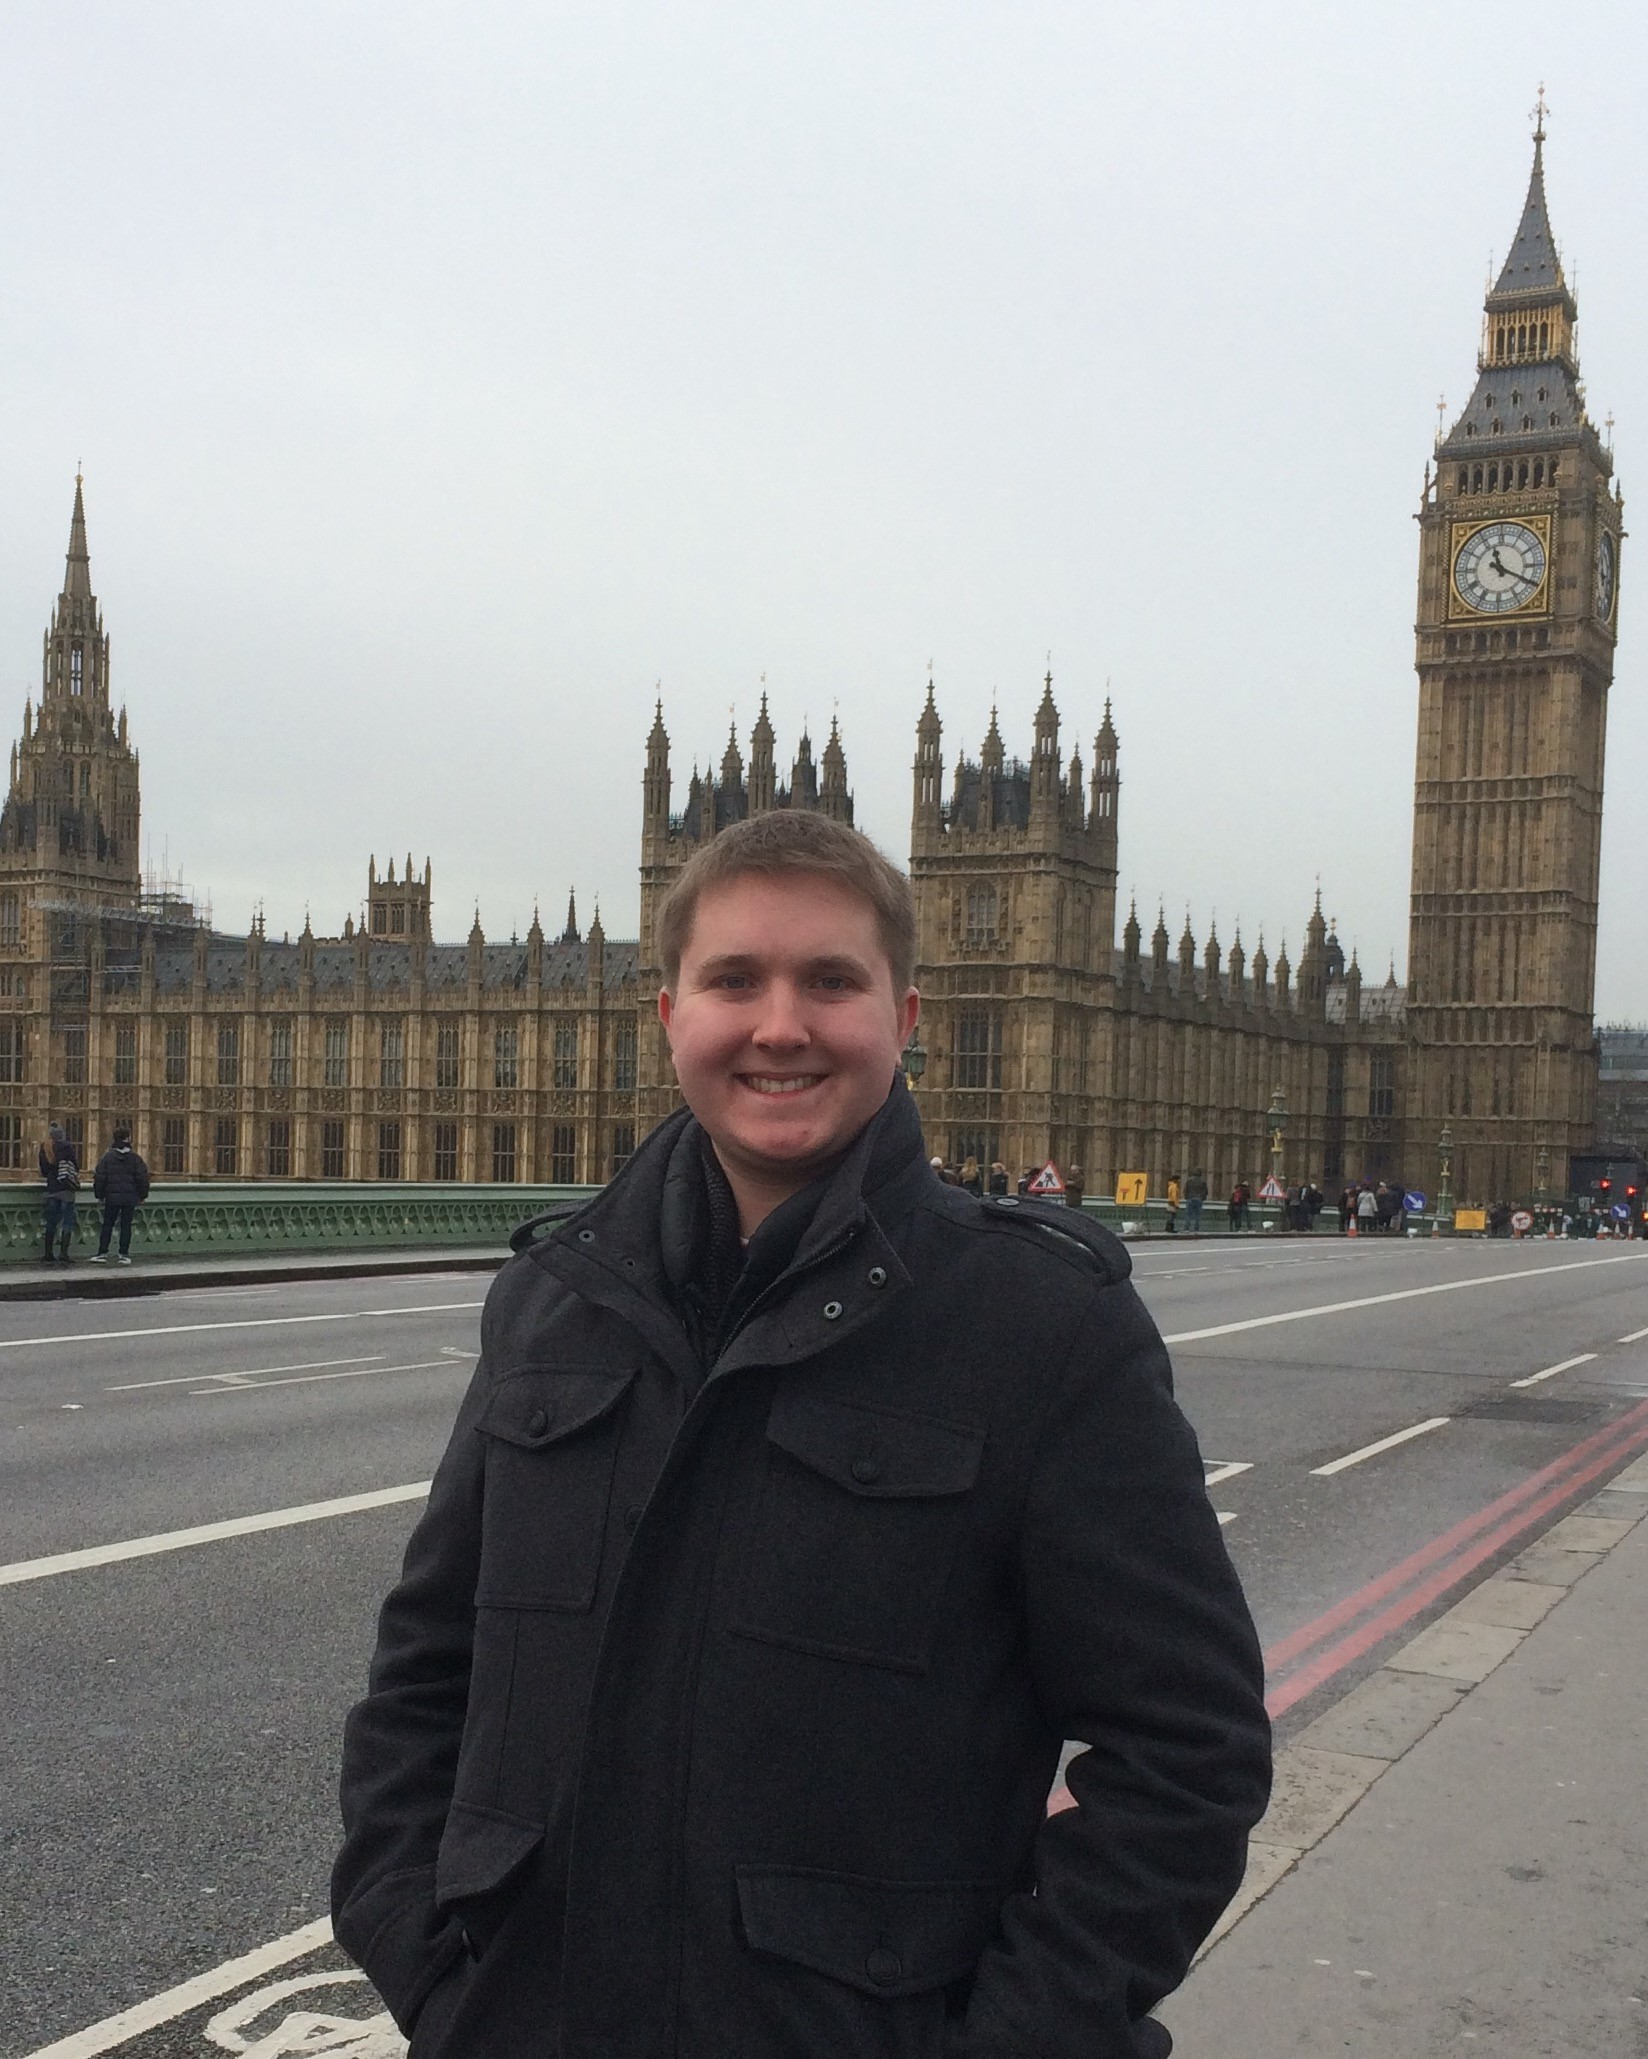 CAPAStudyAbroad_London_Spring2016_From_Samson_Cassel_Nucci_-_Parliment.jpg